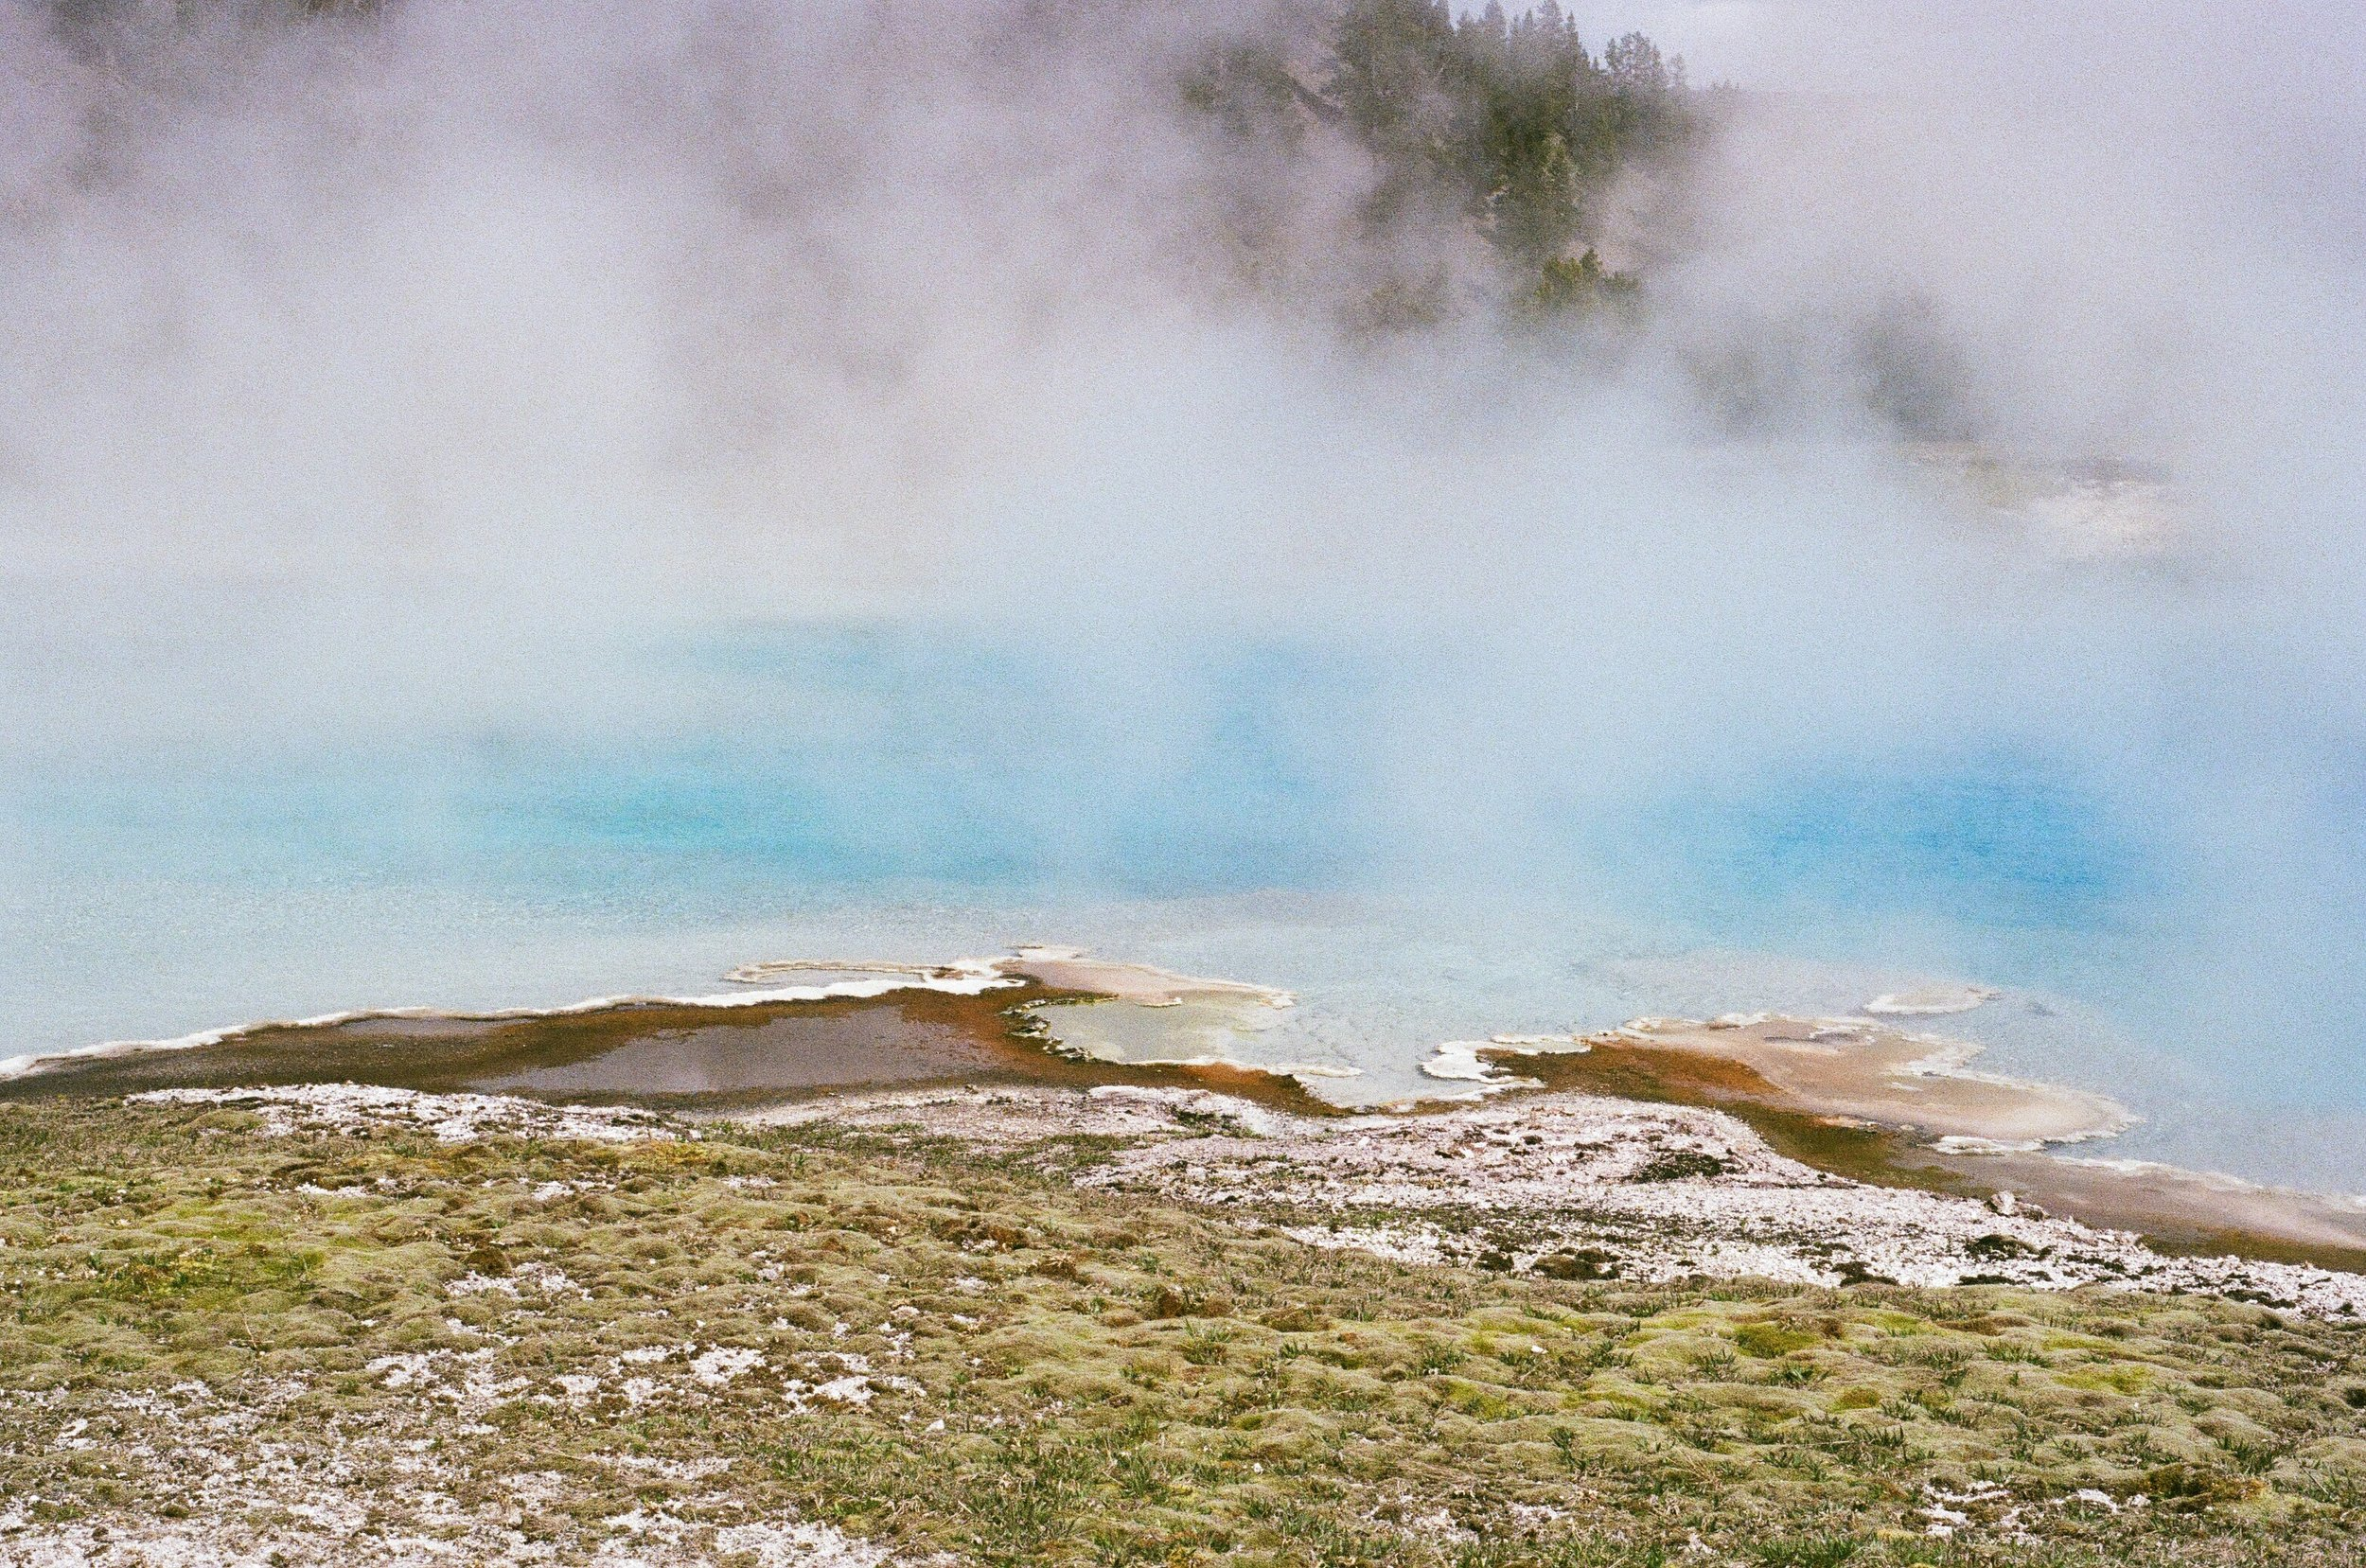 Yellowstone Geiser